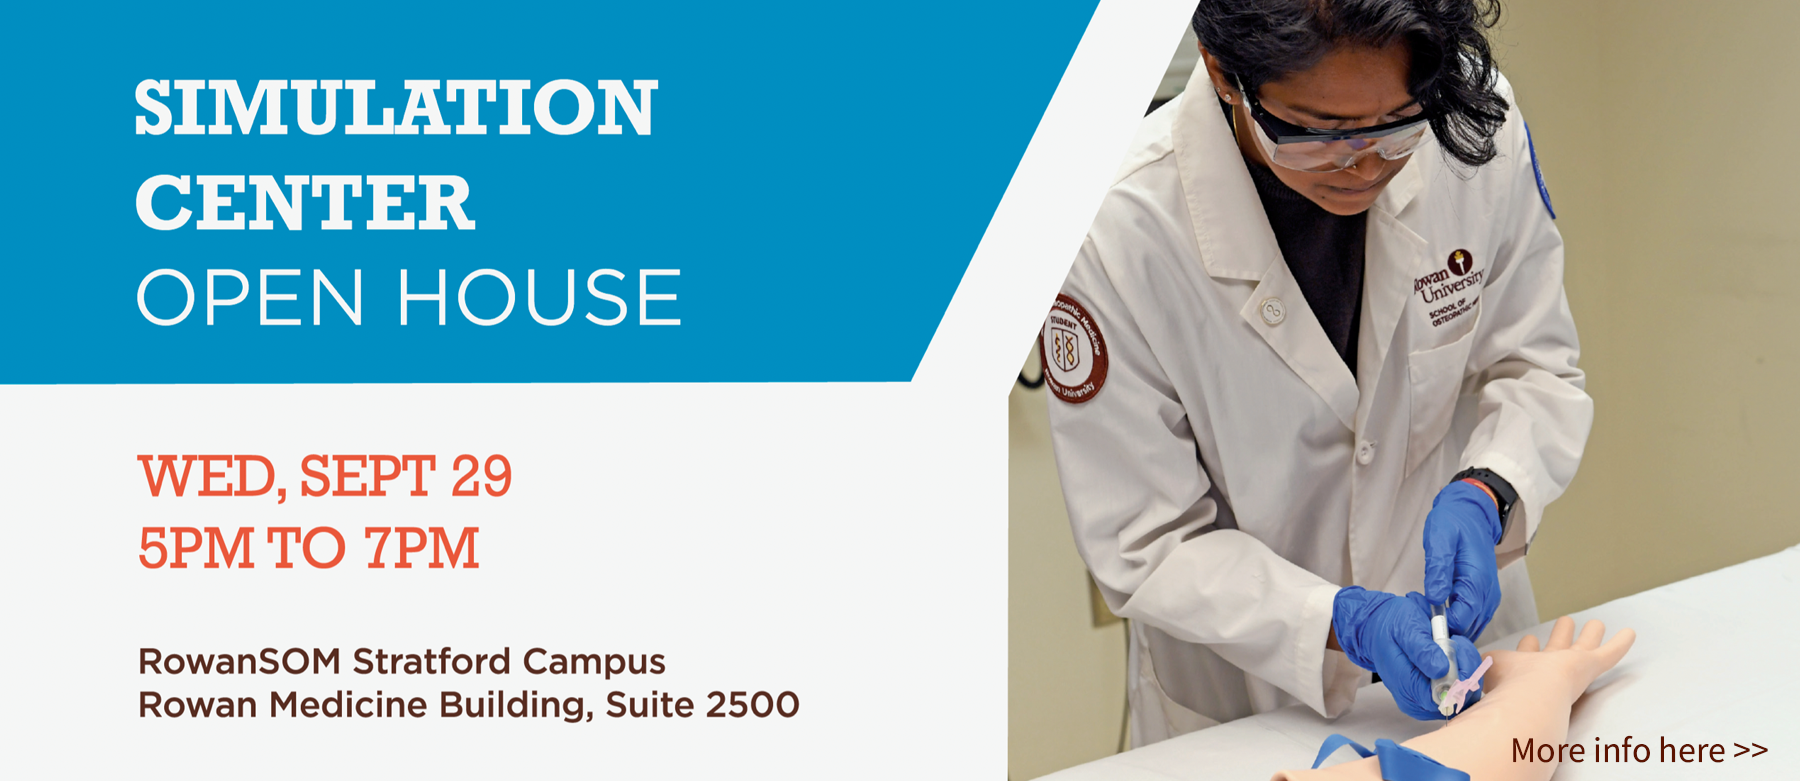 Simulation Center Open House - Click for more info